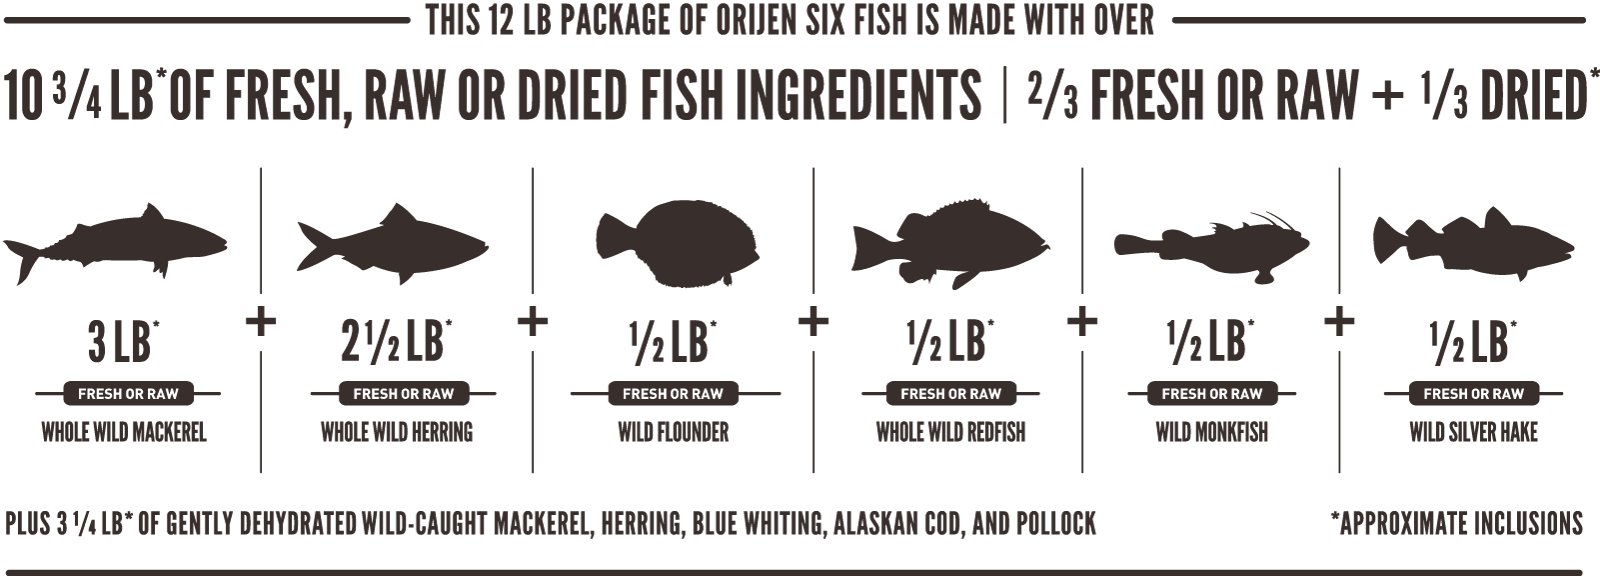 ORIJEN Six Fish Meatmath Formula and Cat Food Ingredients